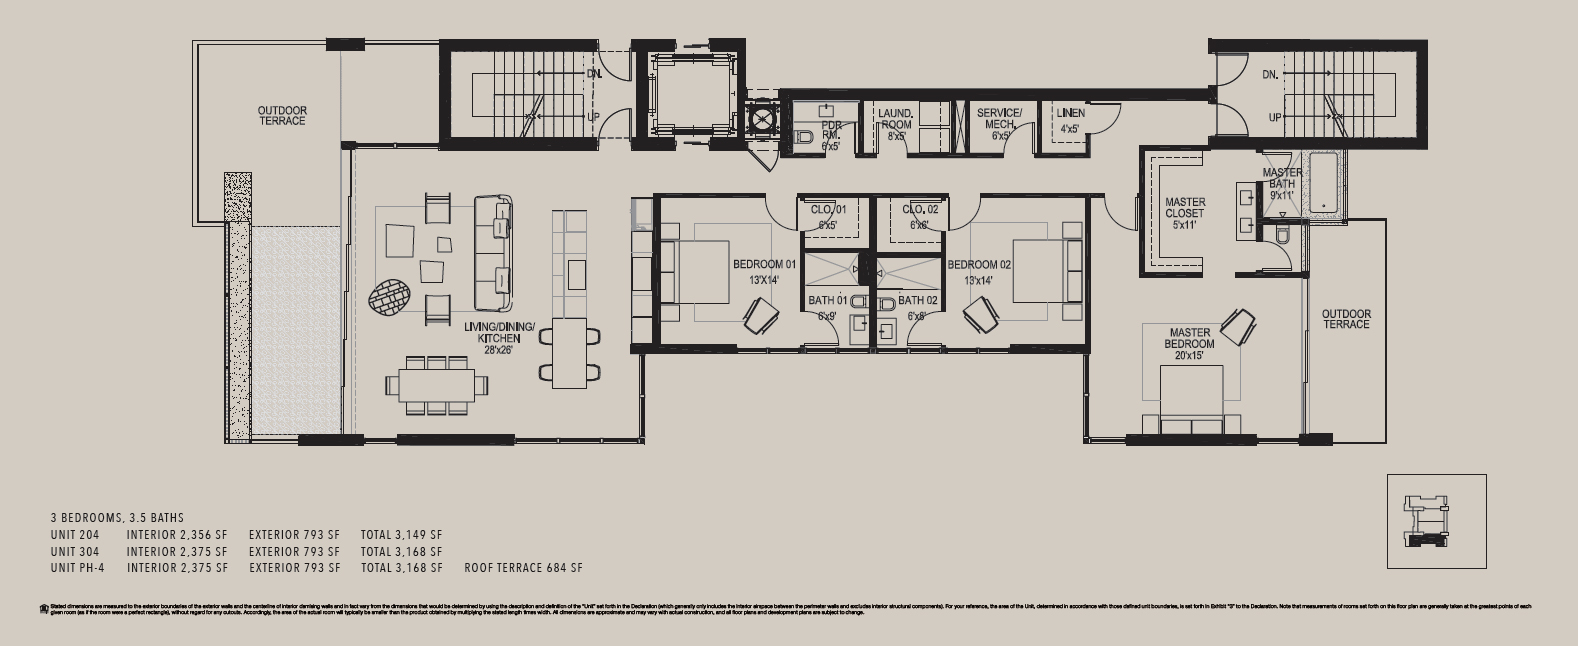 Louvre house floor plans miami beach florida for Miami mansion floor plans